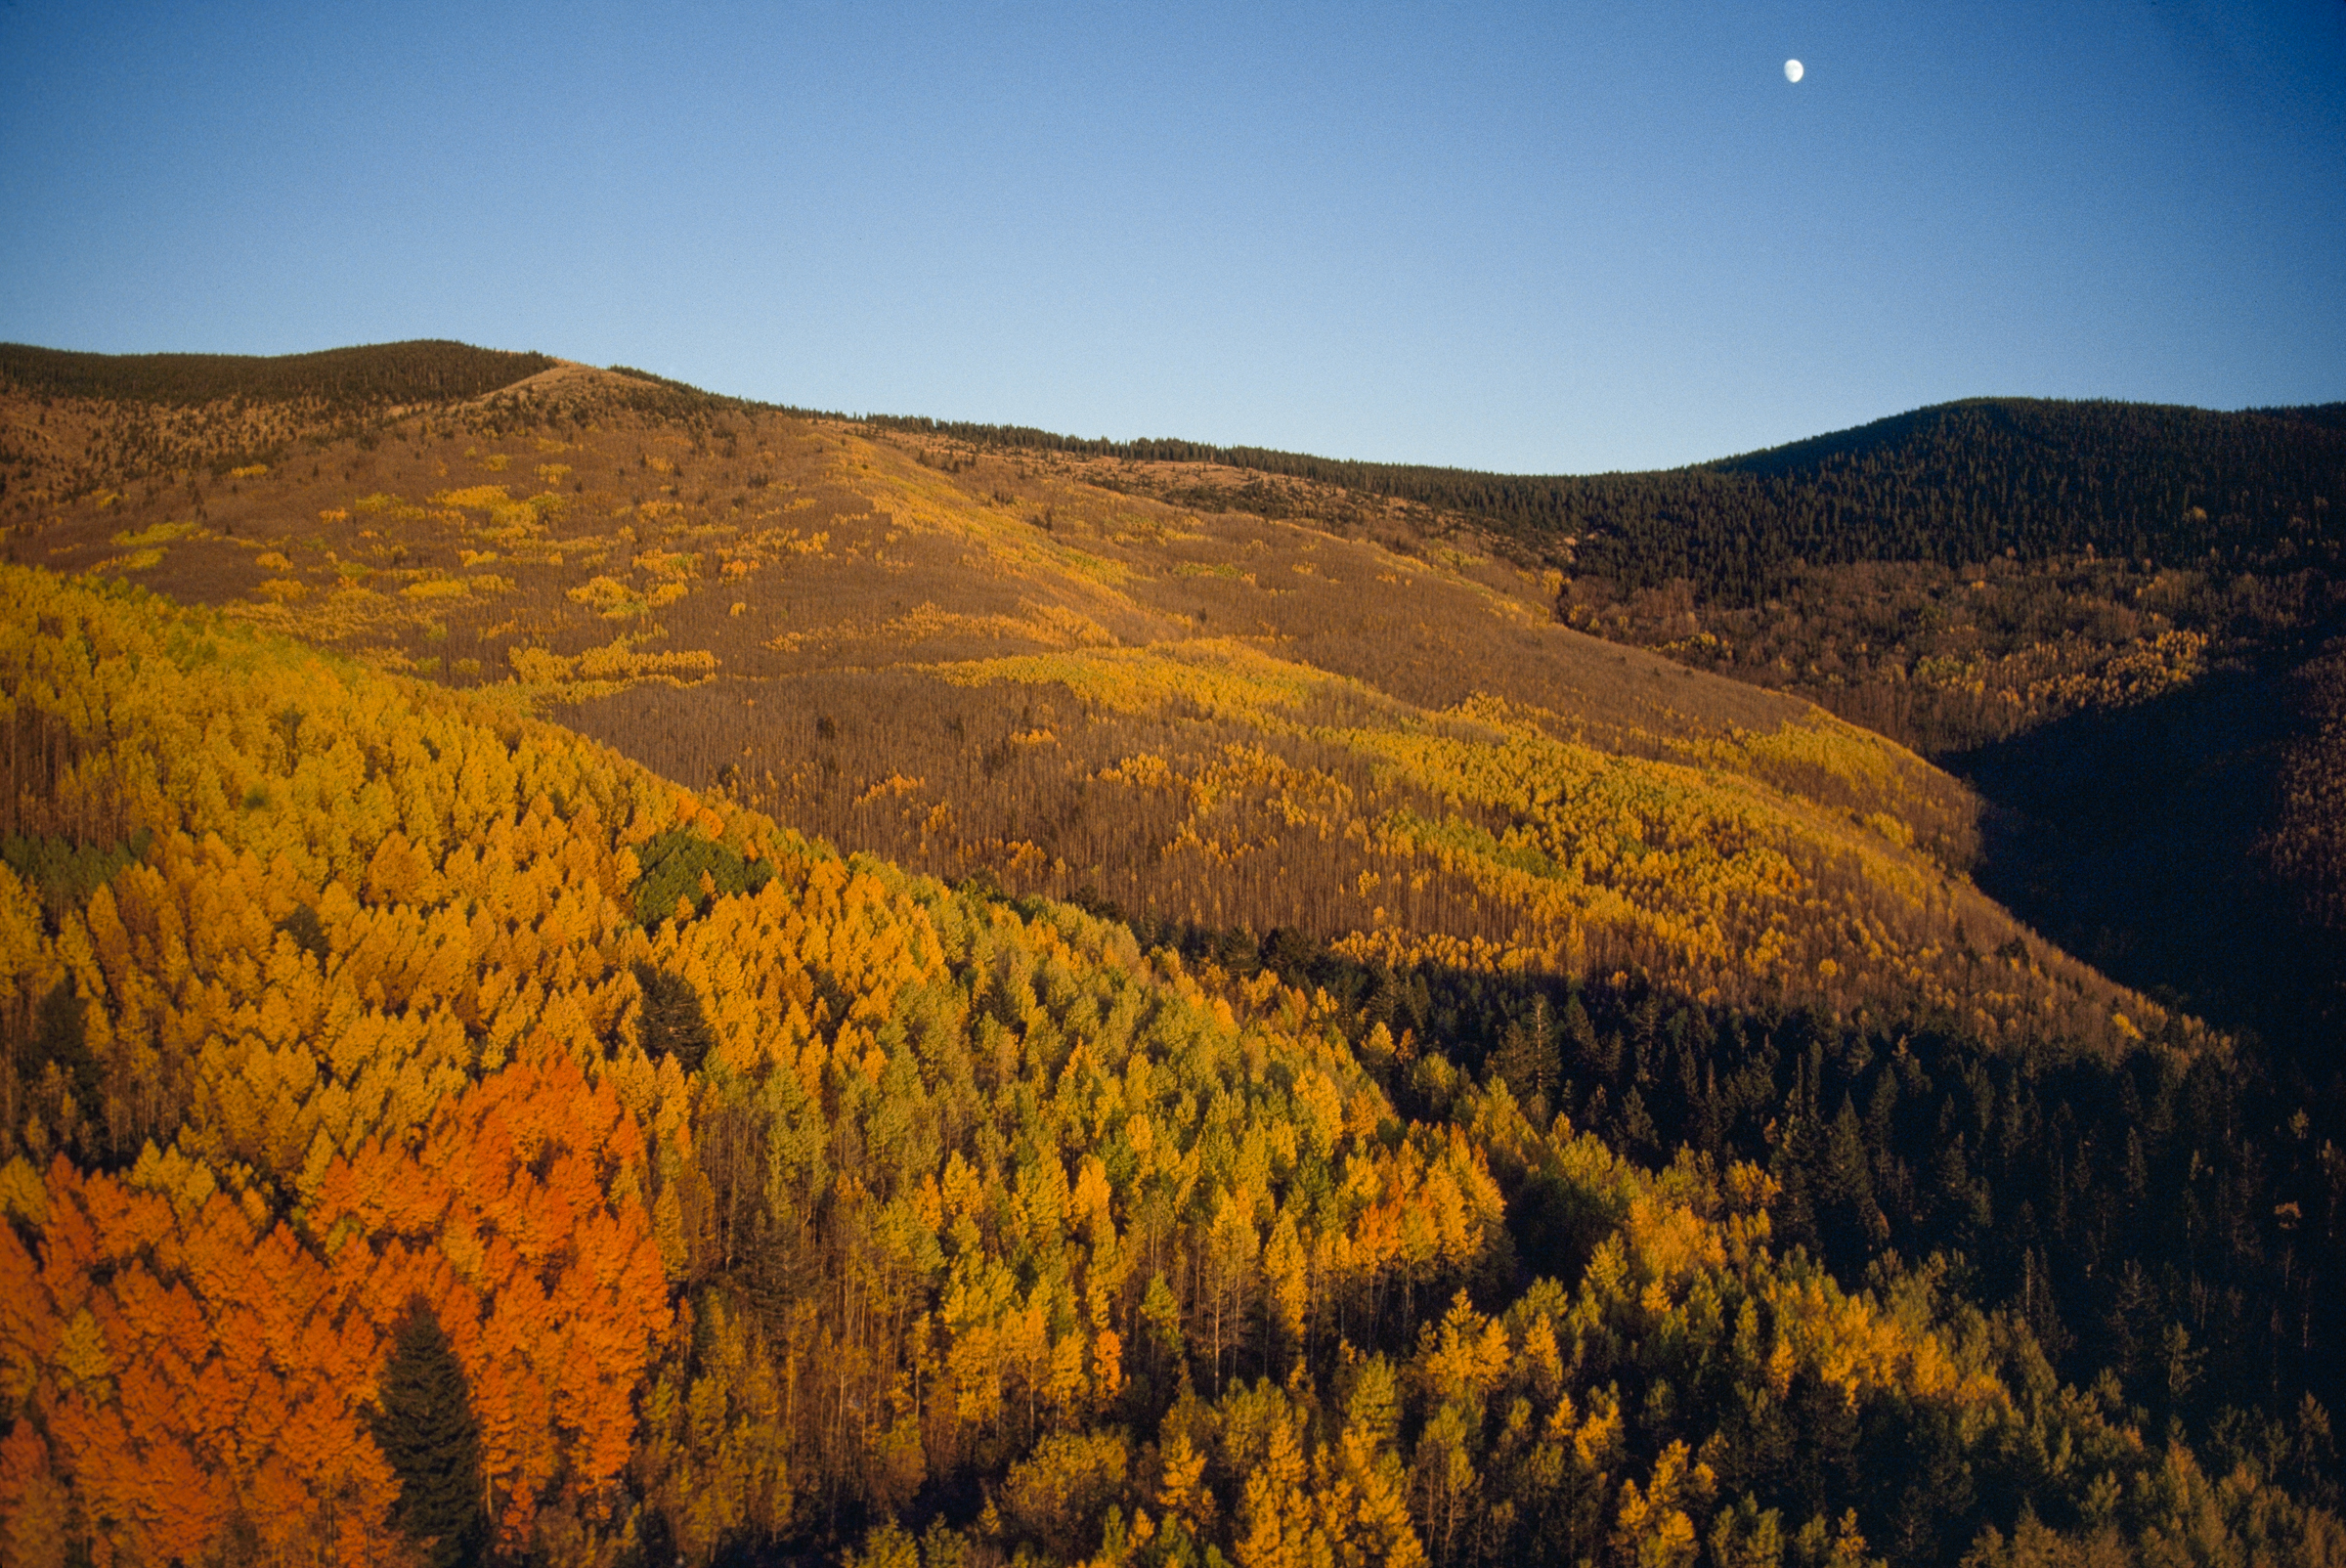 In fall, the Santa Fe National Forest is a mixture of gold and green, thanks to its aspen and evergreen trees. Gordon Gahan/National Geographic Creative